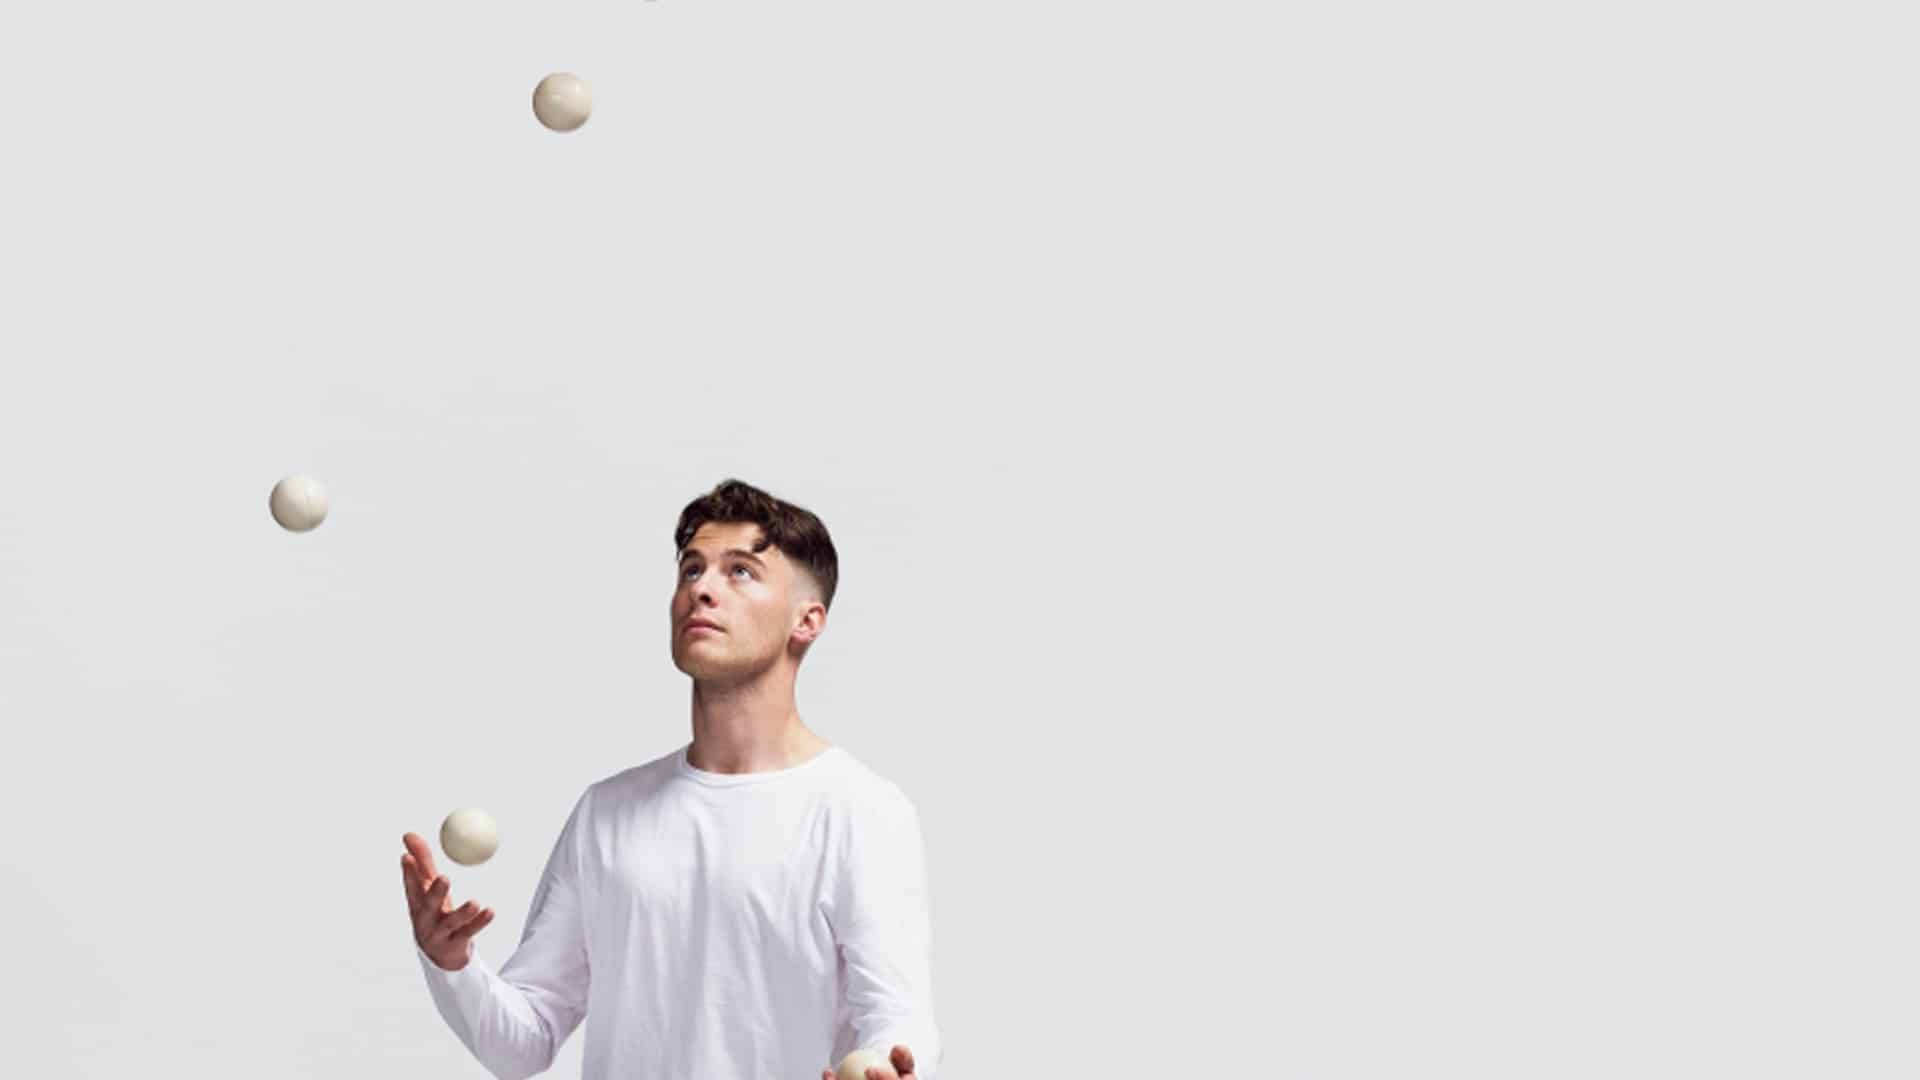 A person in a long sleeved white t-shirt juggling three balls